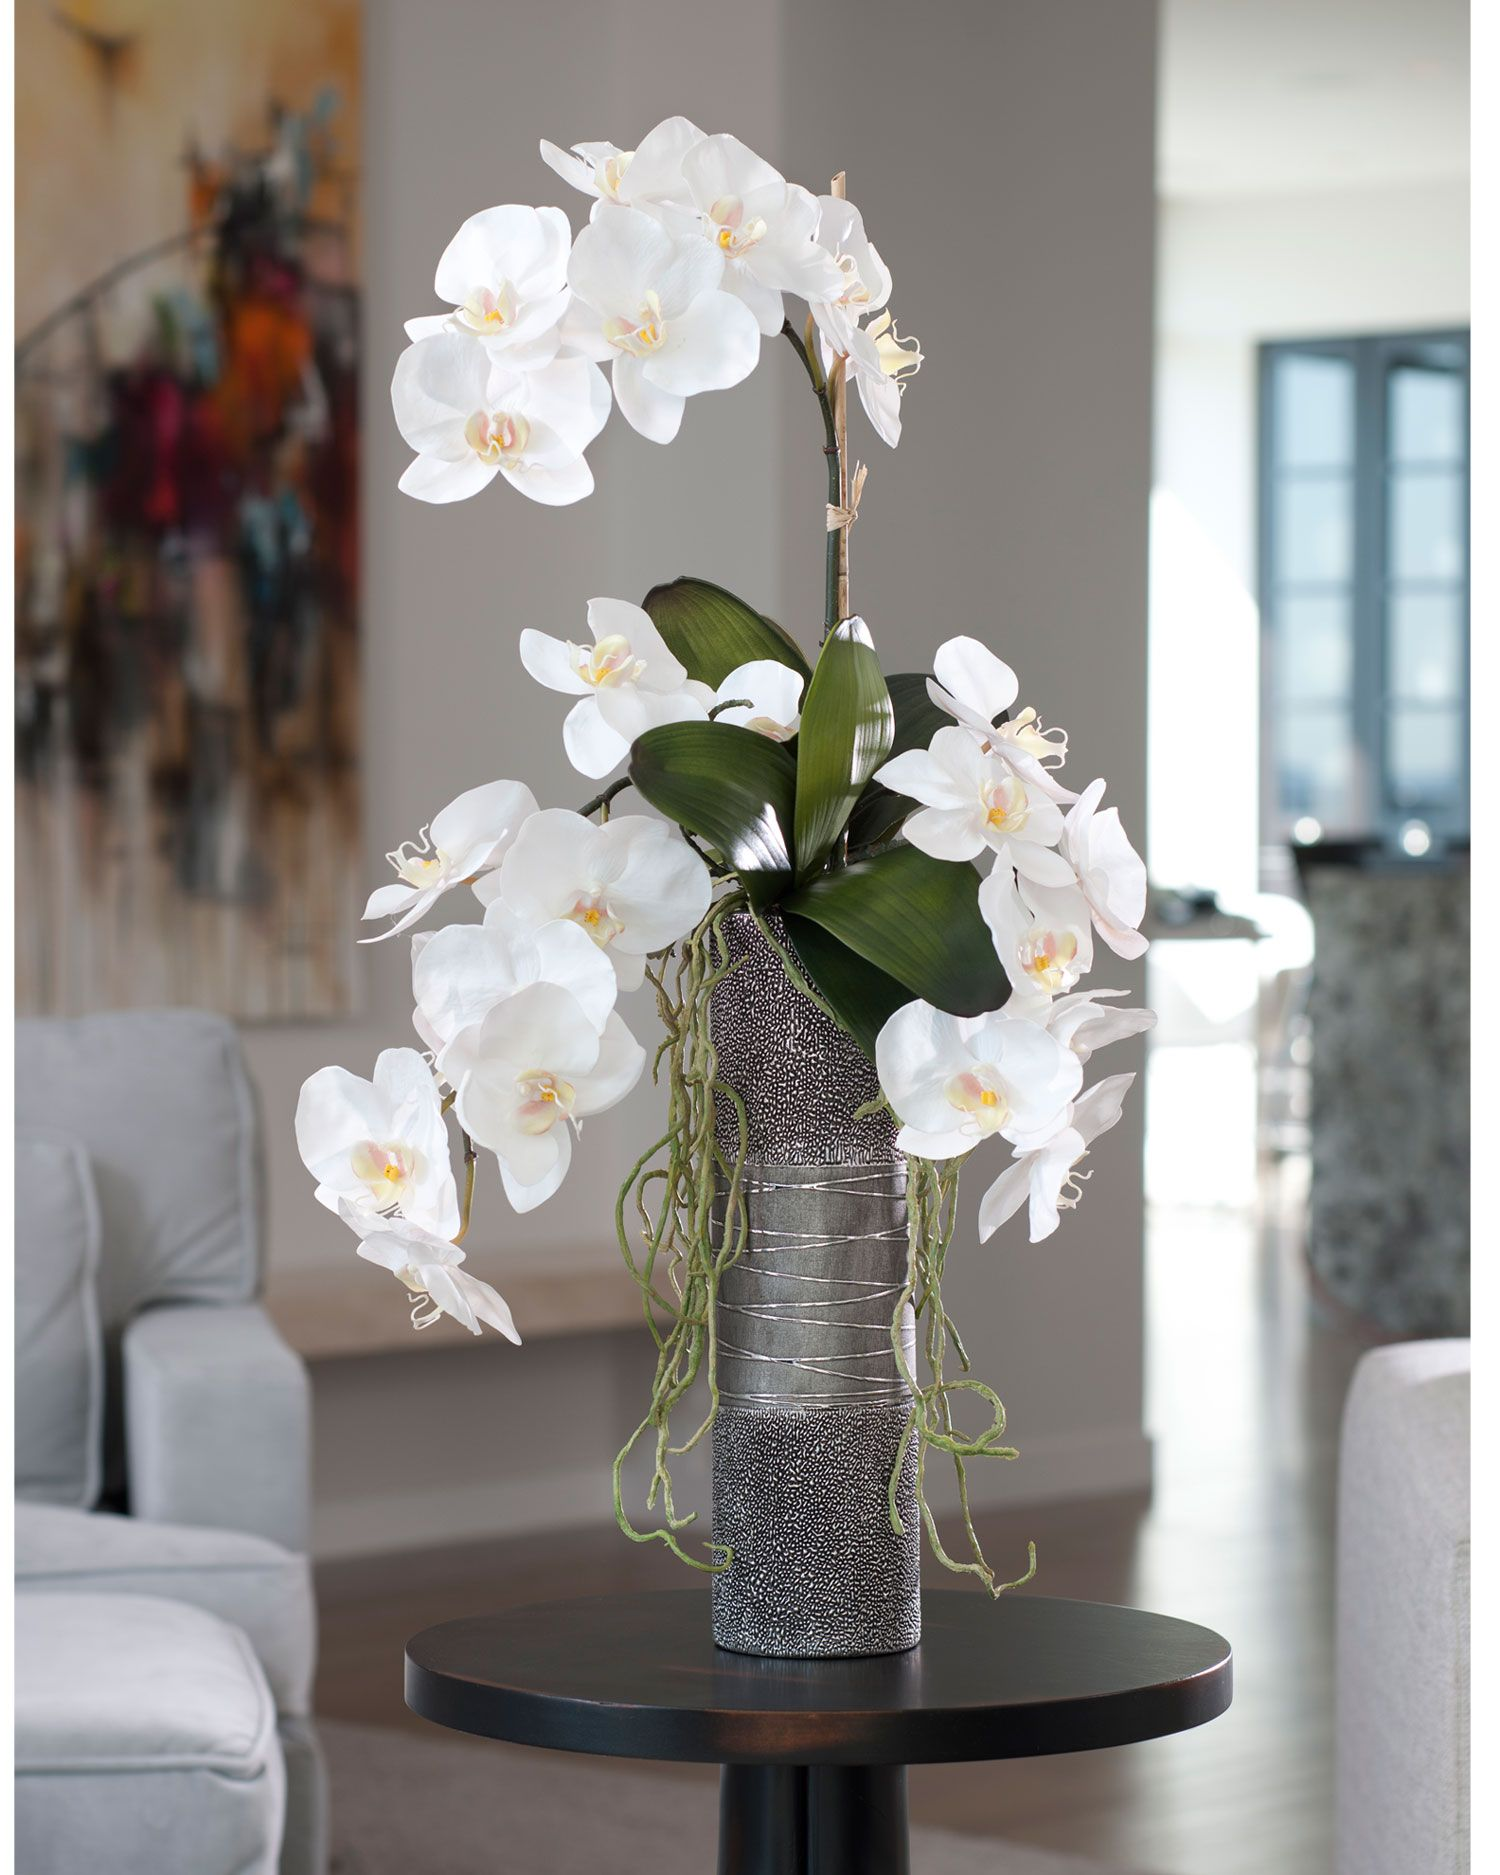 three luscious cream white phalaenopsis plants with large. Black Bedroom Furniture Sets. Home Design Ideas